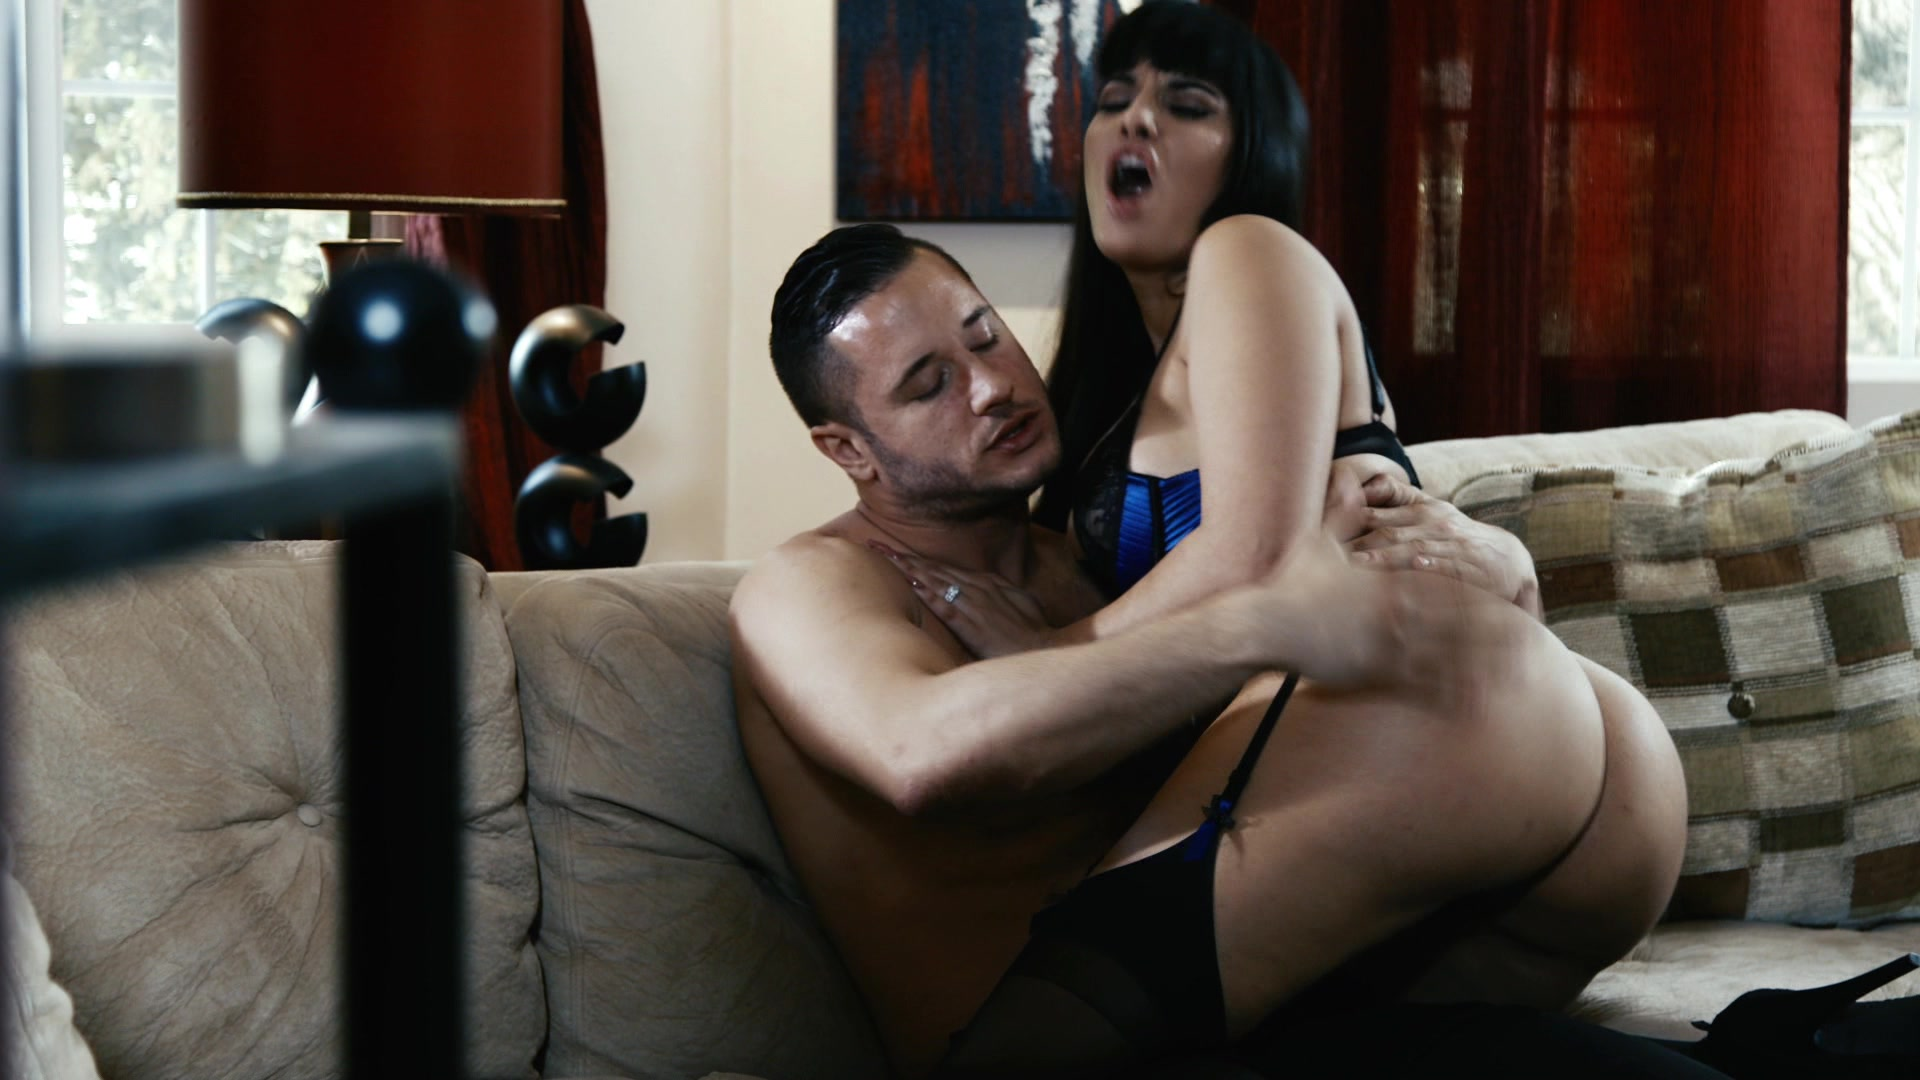 Scene with Danny Mountain and Mercedes Carrera - image 6 out of 20